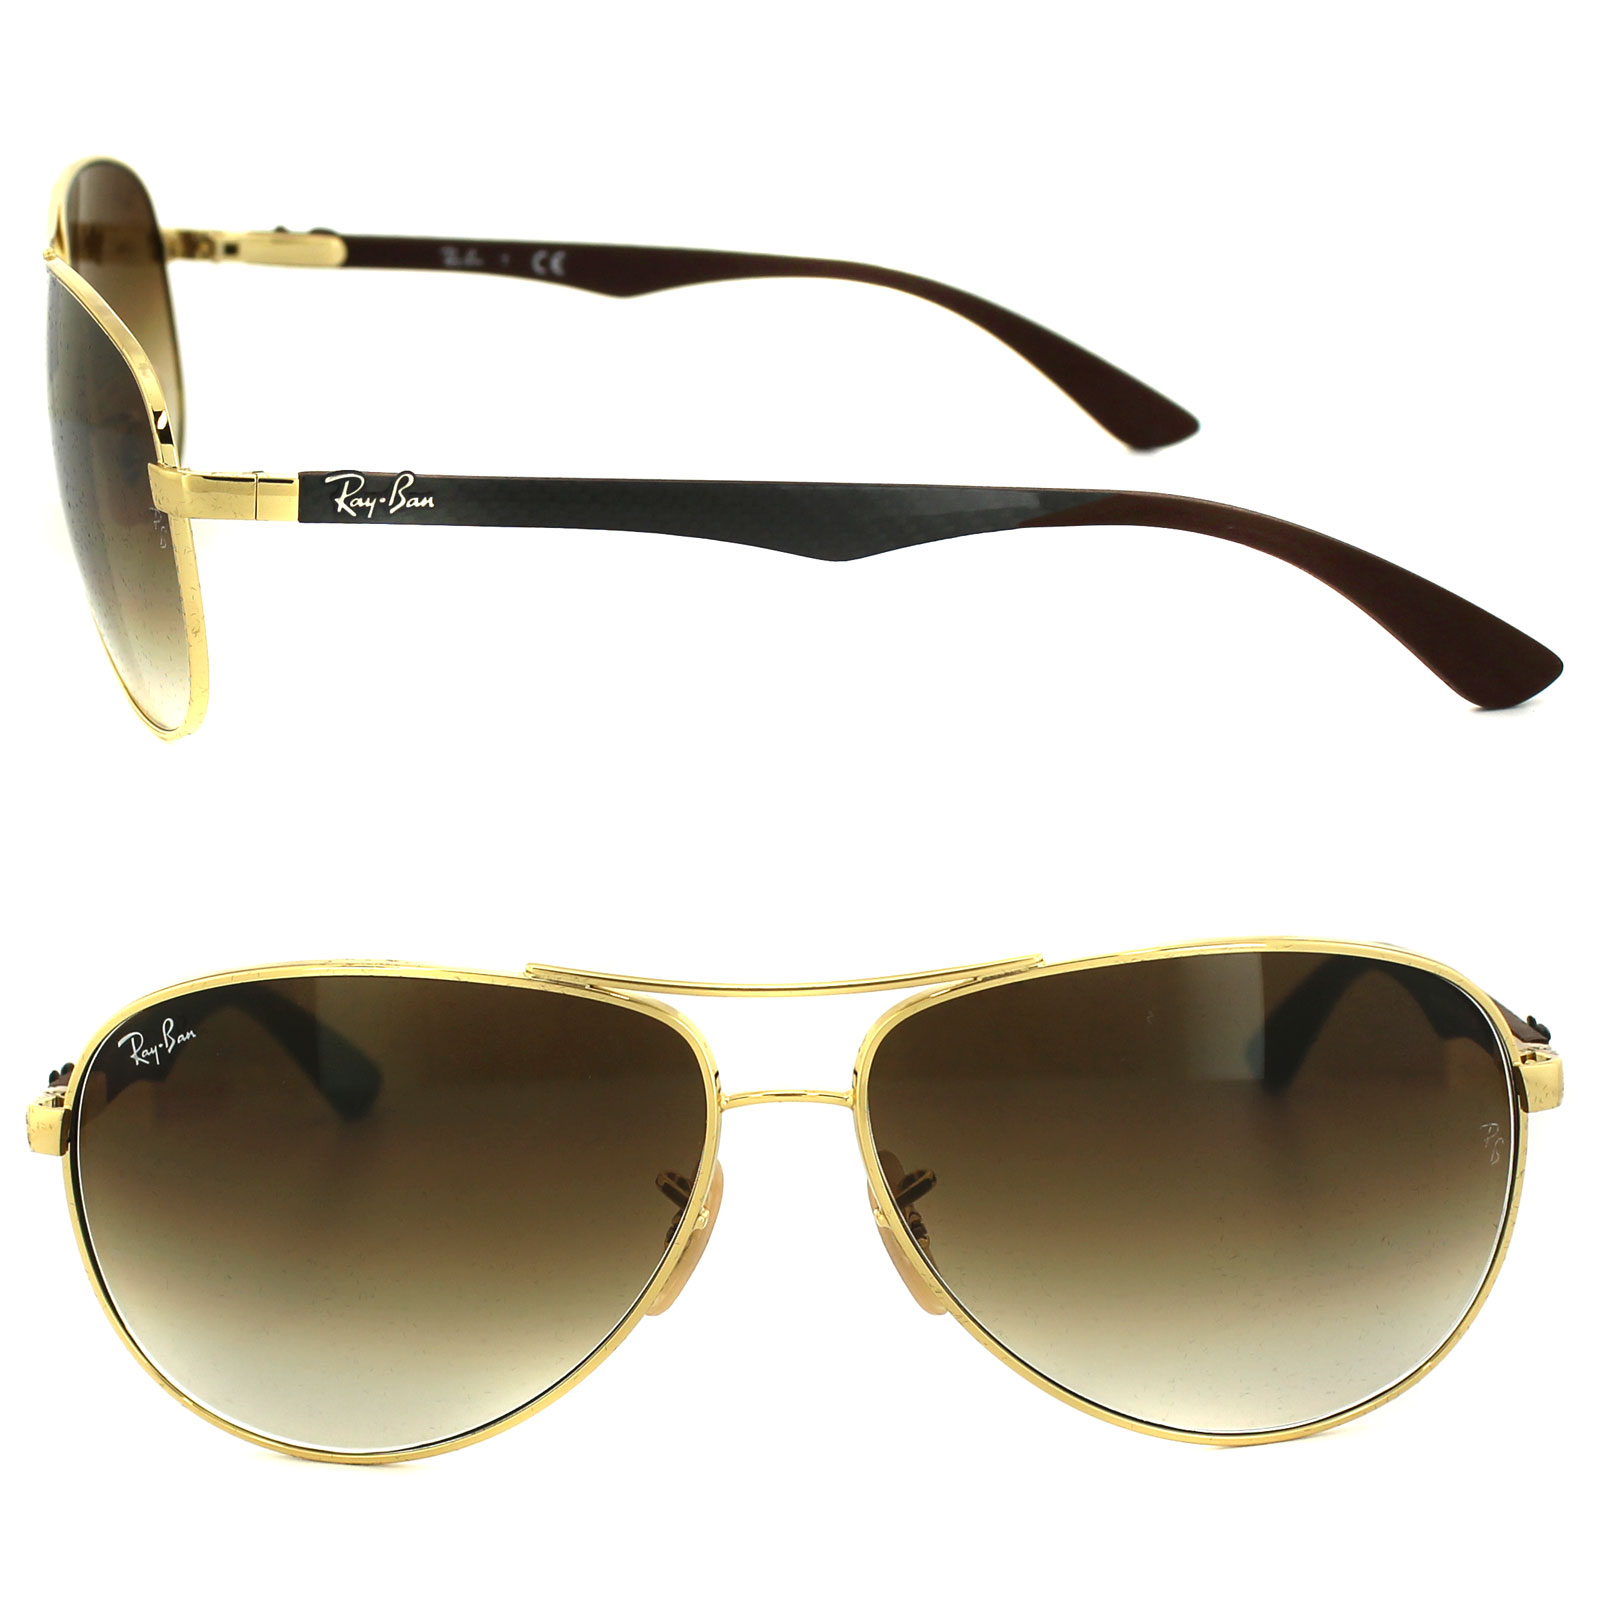 371af6db18 Ray-Ban Sunglasses 8313 001 51 Gold Brown Gradient 8053672006582